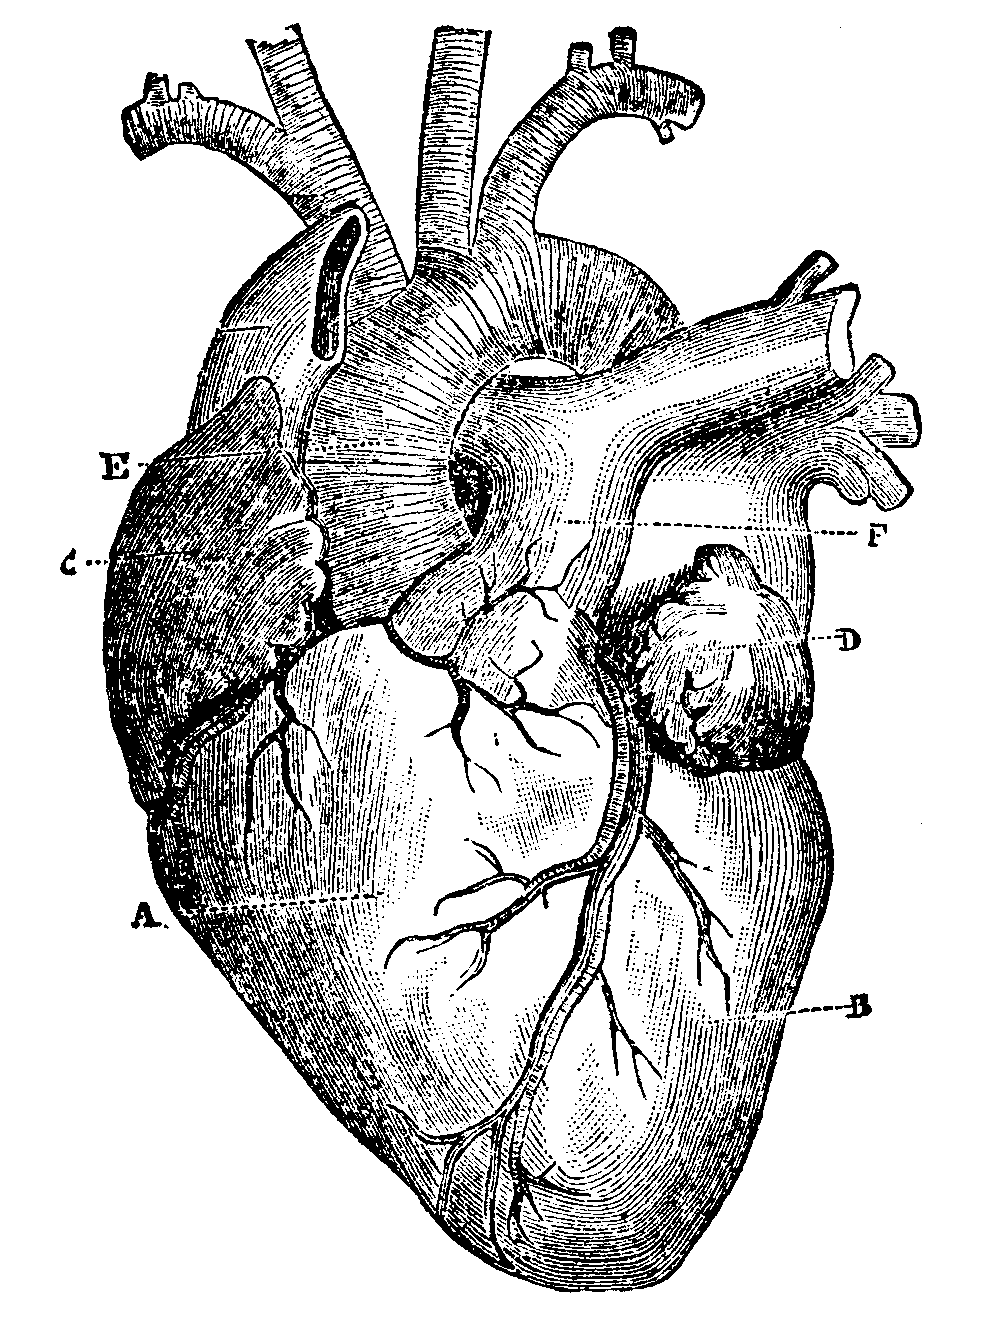 Drawn heart human heart 10 Top Most About Interesting